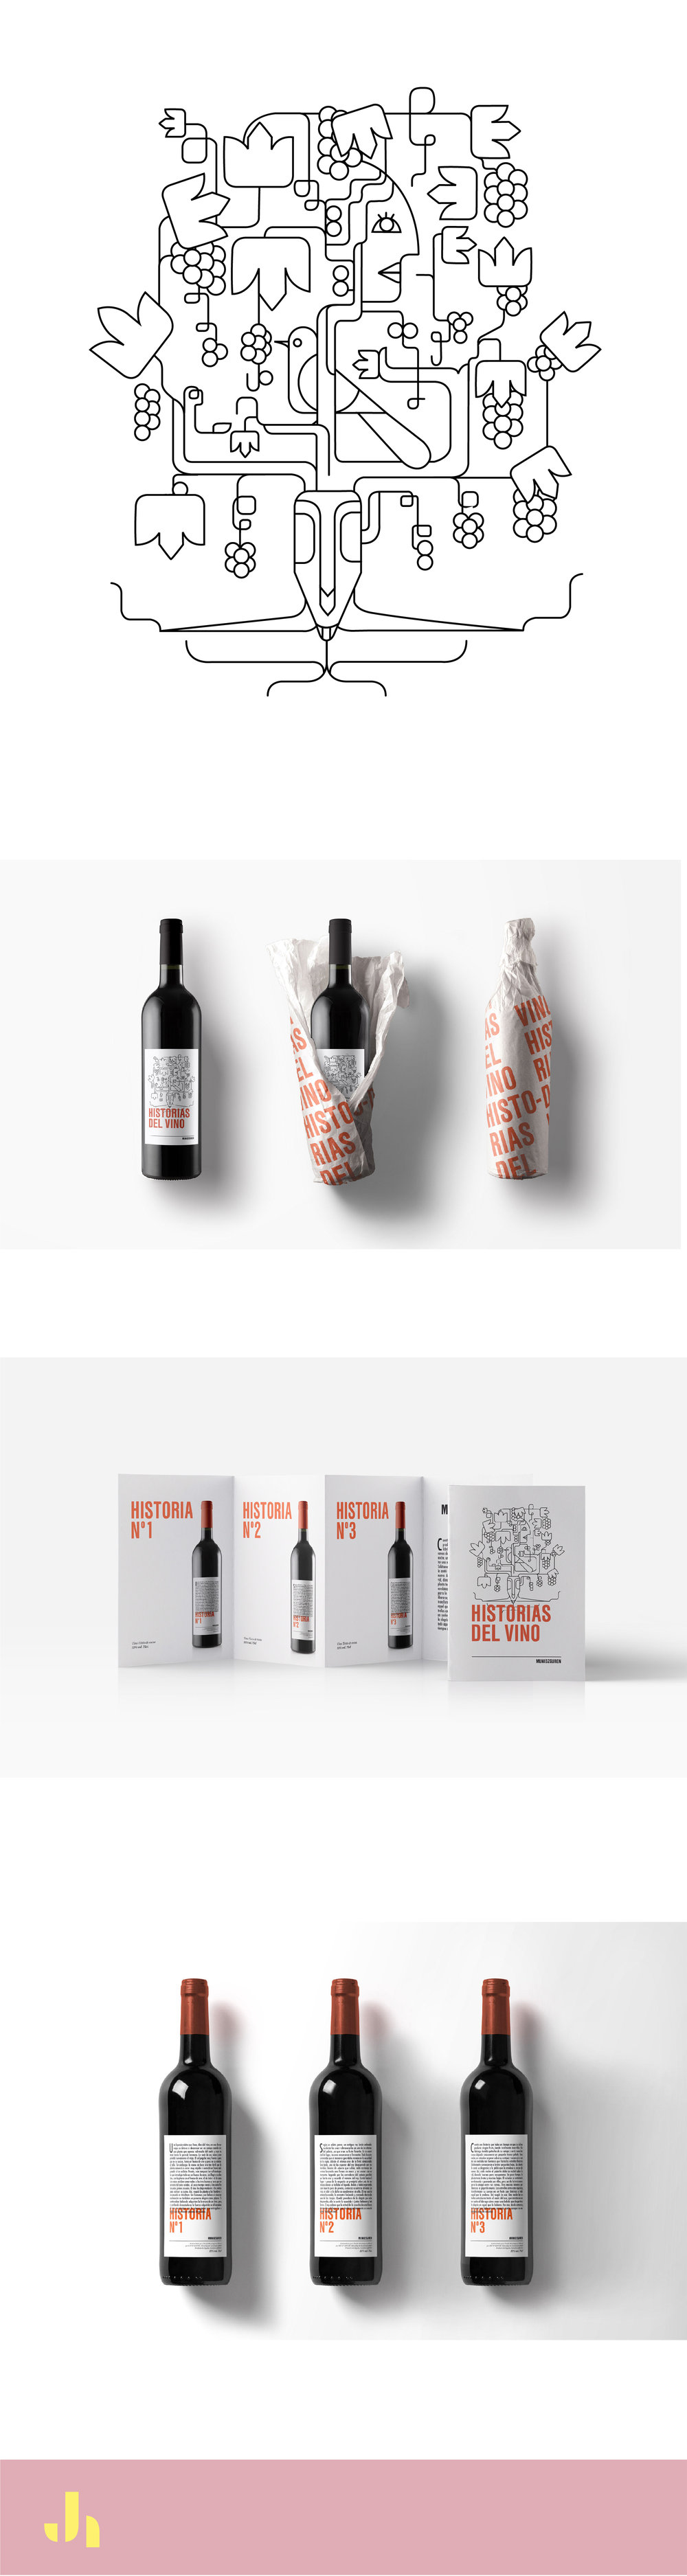 Wine_label_illustration_graphic_design_brand_Jaime_Hayde.jpg